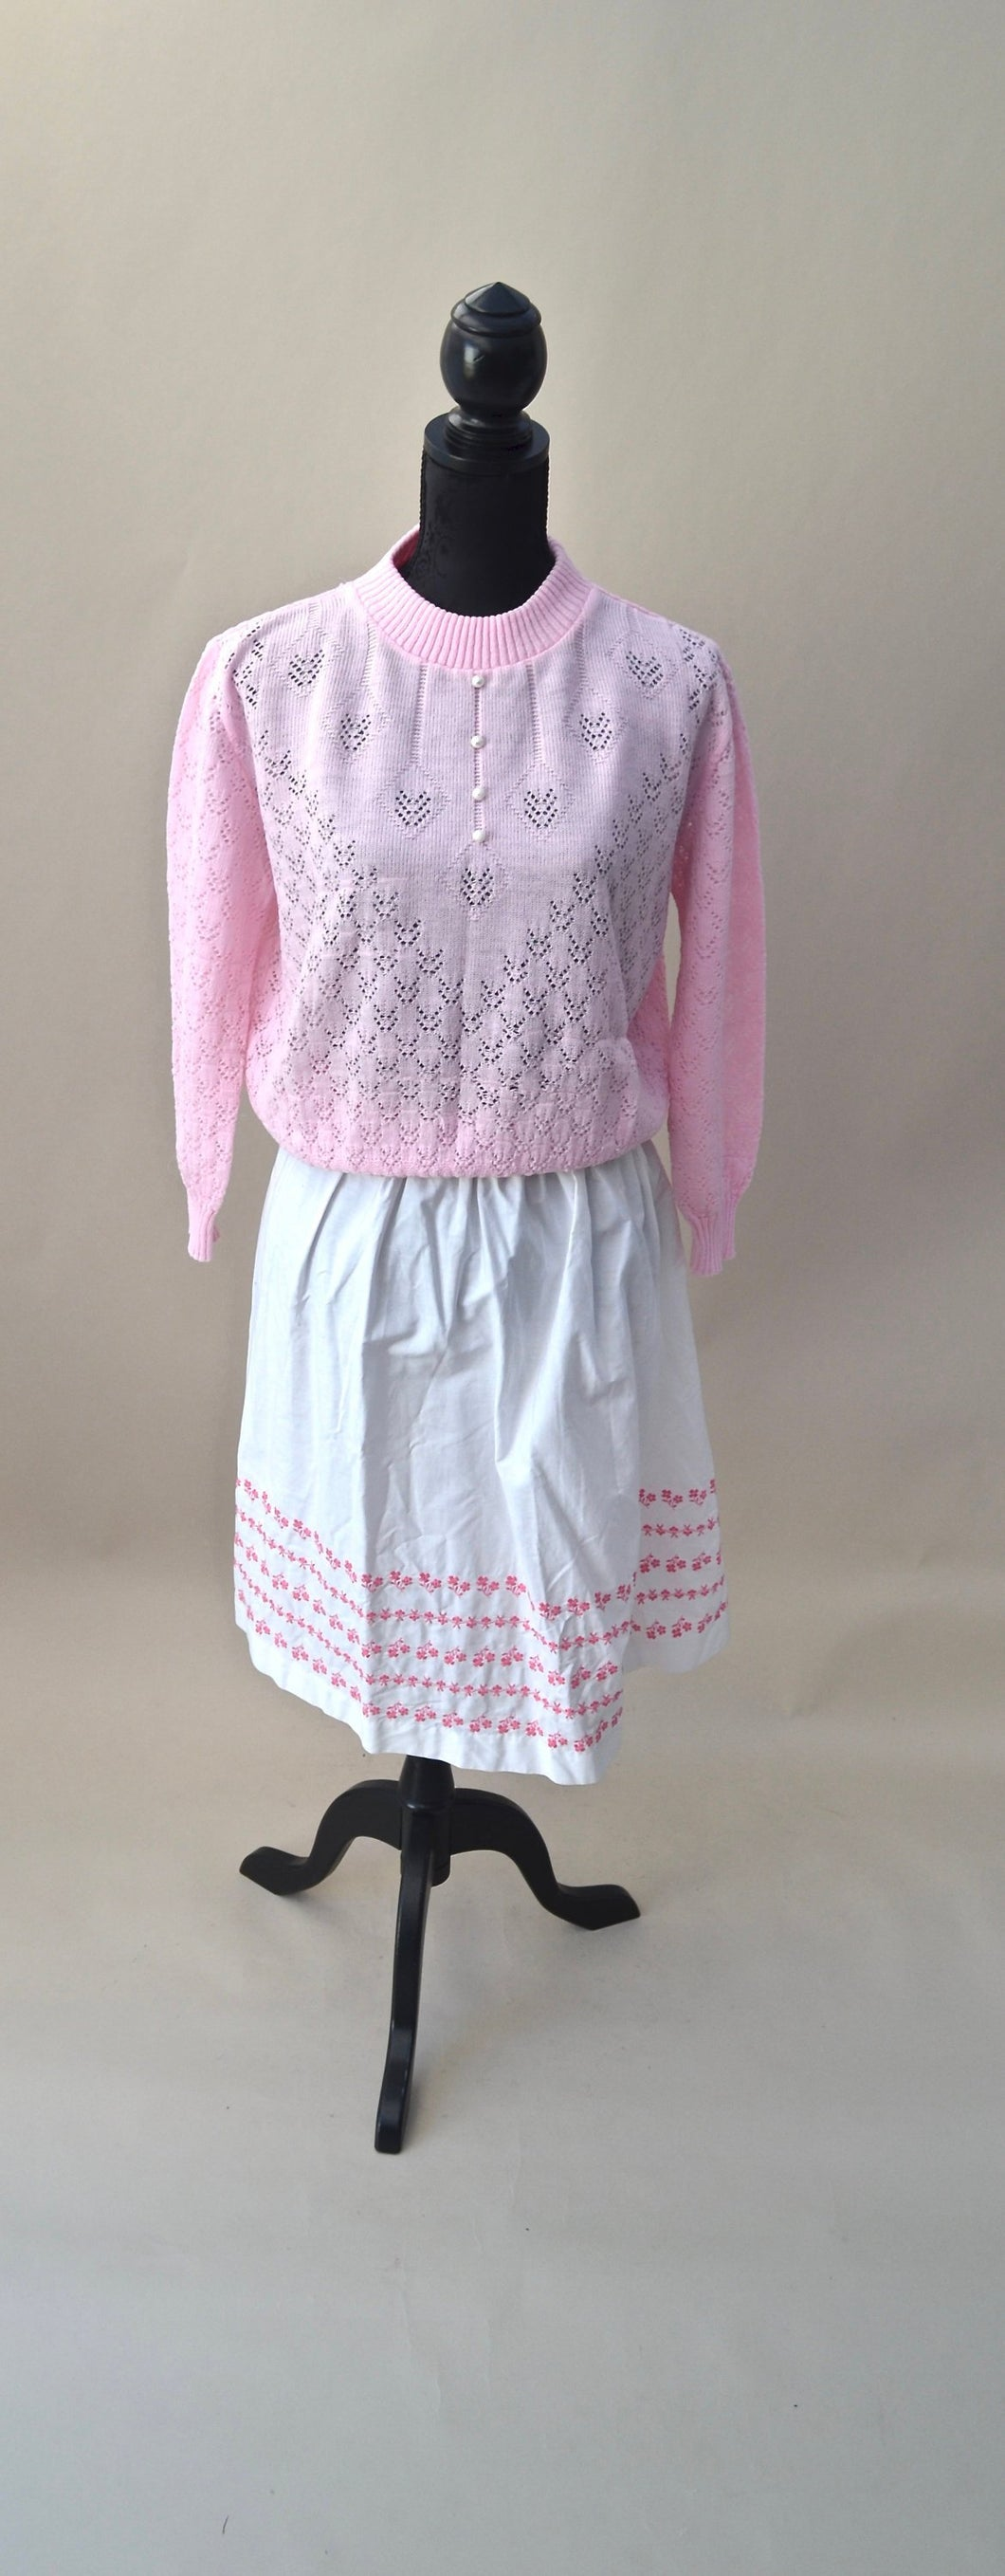 1970s Pretty pink sweater top with pearl buttons, Est UK size 12. SALE